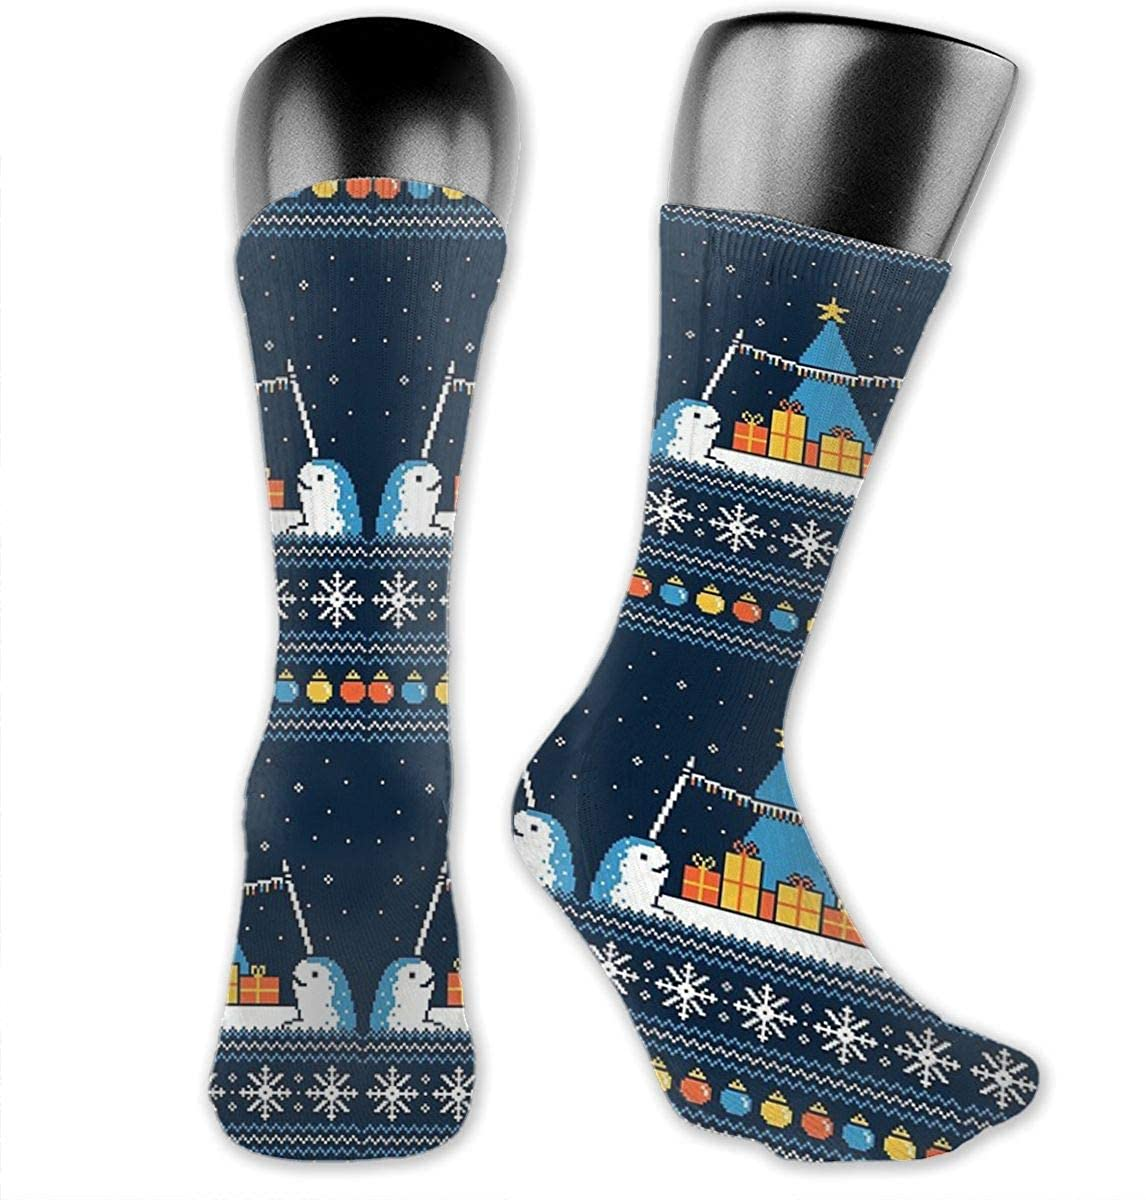 Unisex Crazy Funny Christmas Narwhals Socks Colorful Athletic Travel Socks Novelty Casual Crew Socks